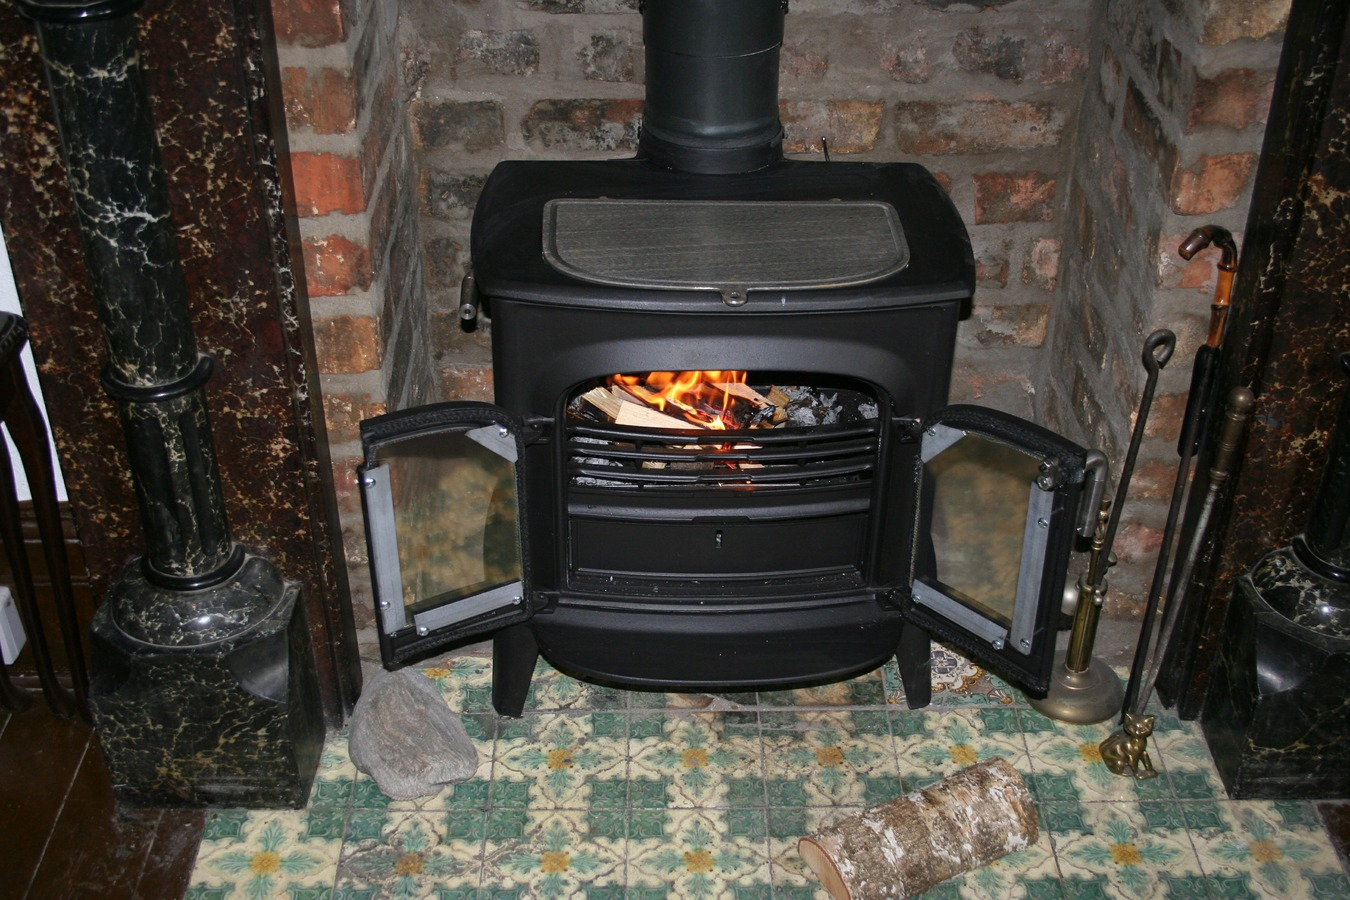 glowing-red-chimney-flame-fire-fireplace-1011899-pxhere.com.jpg